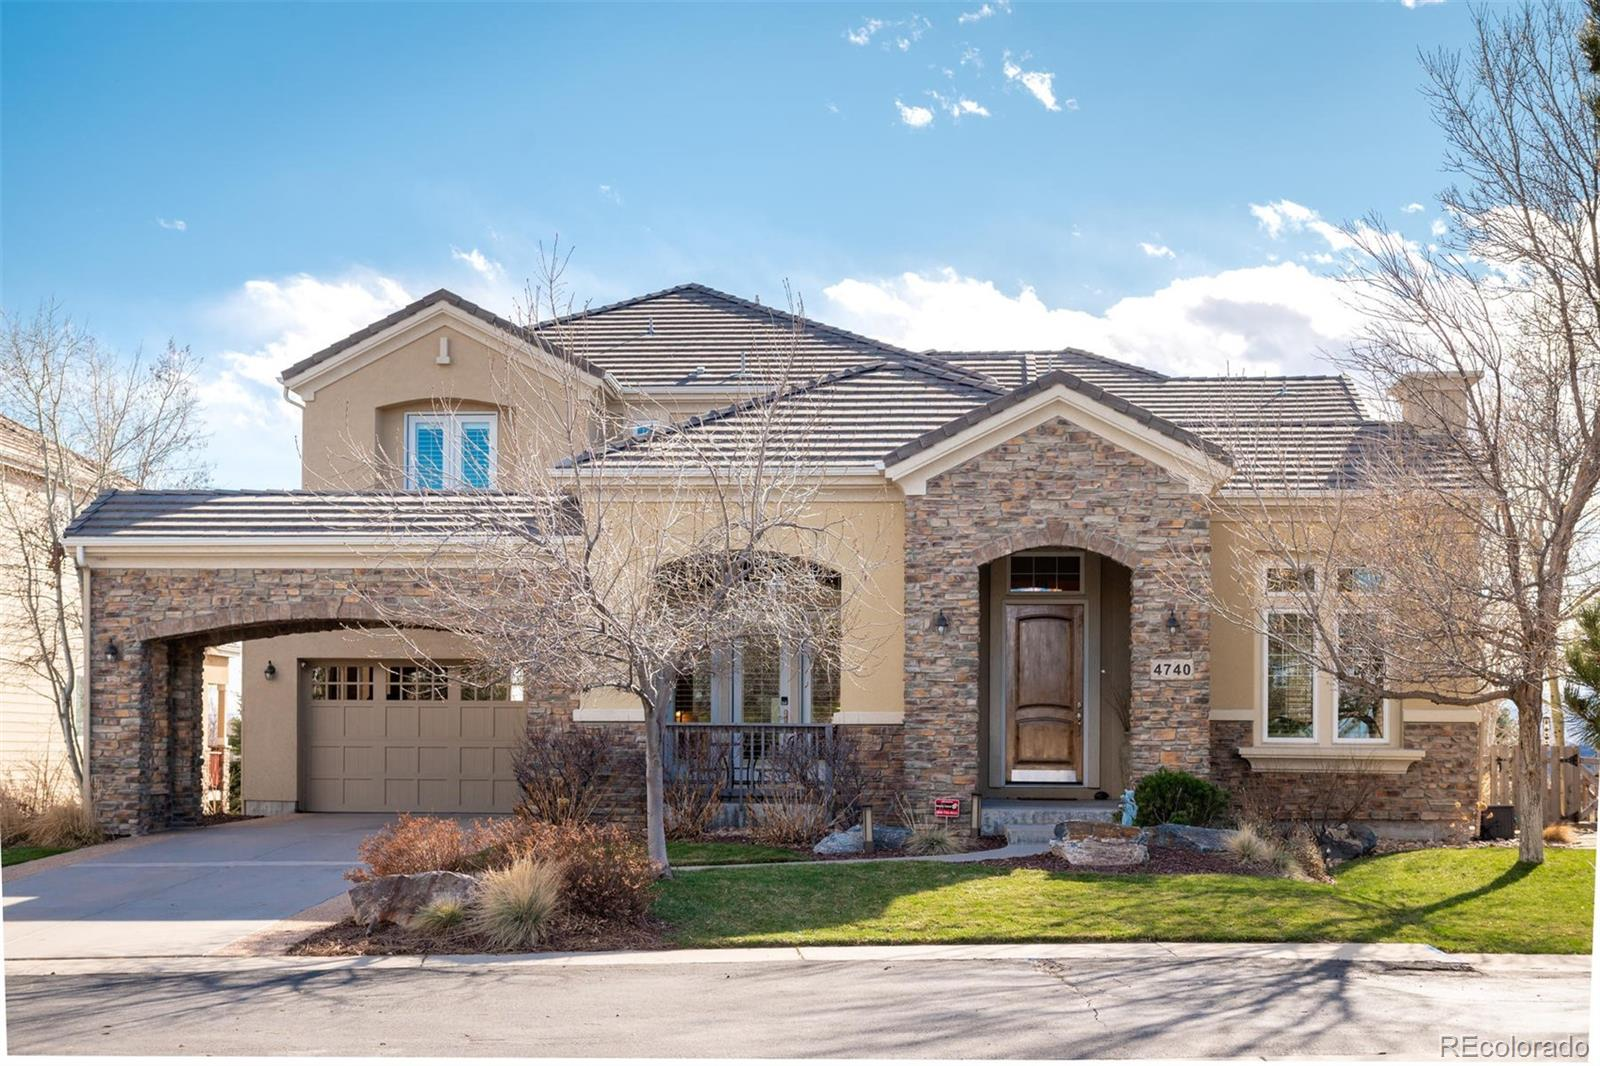 Photo of 4740 W 105th Drive, Westminster, CO 80031